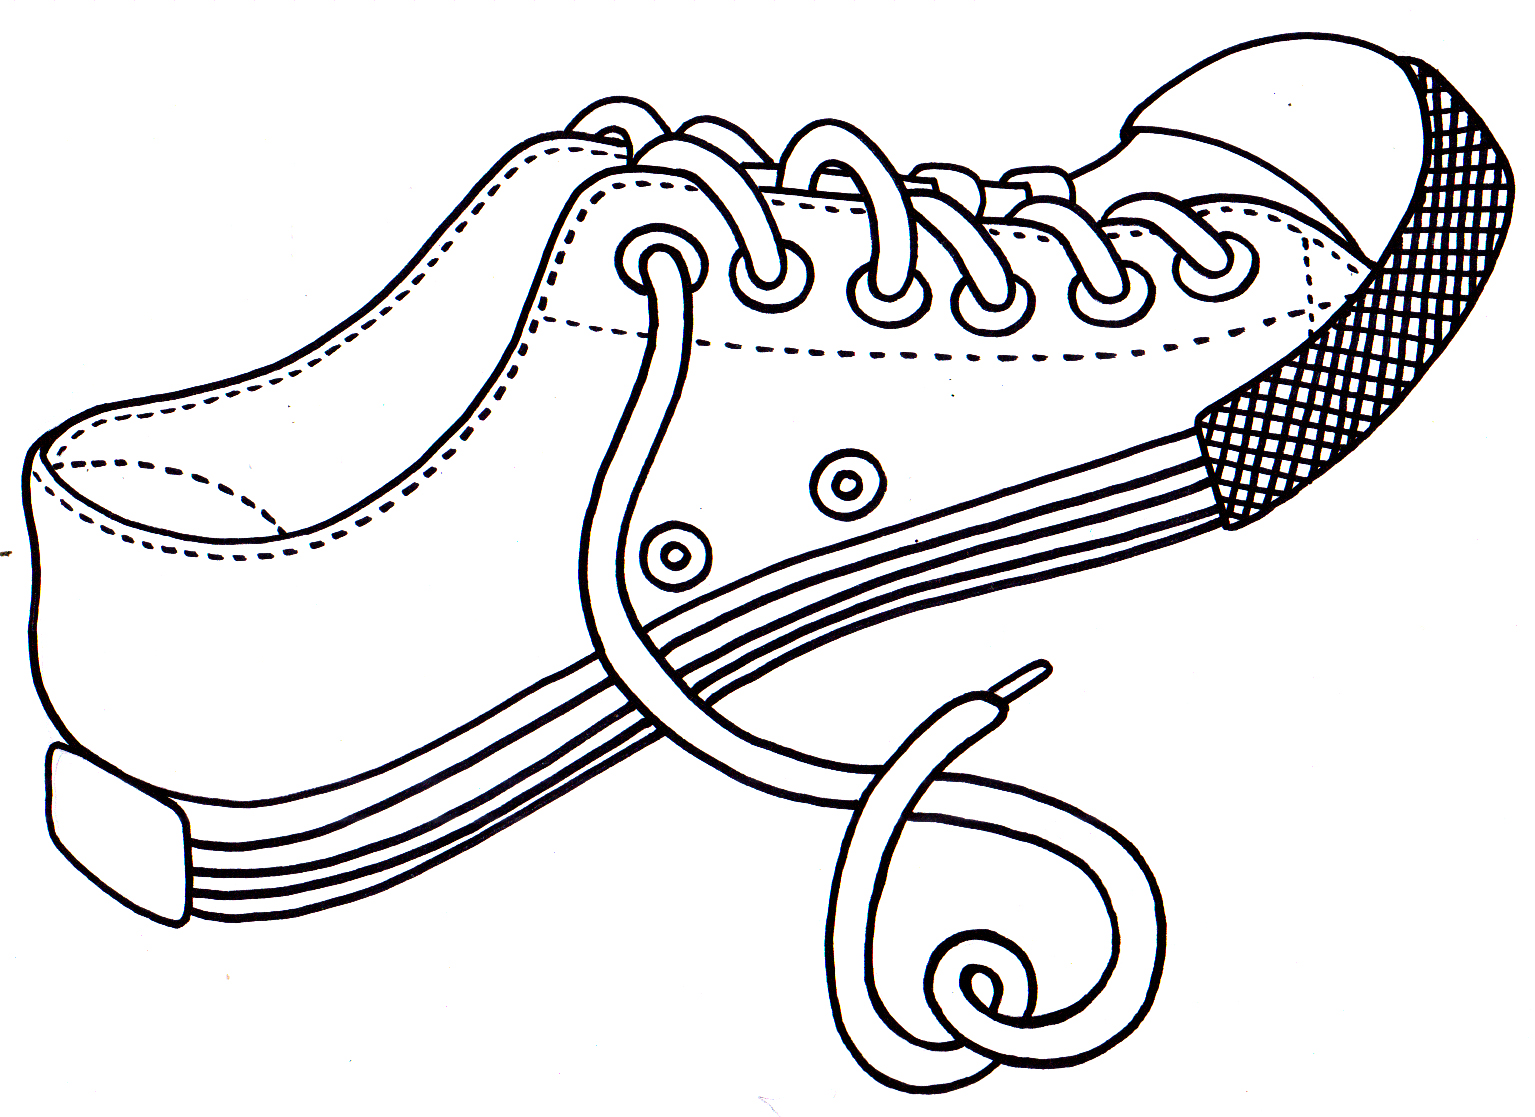 childrens coloring pages shoes - photo#19